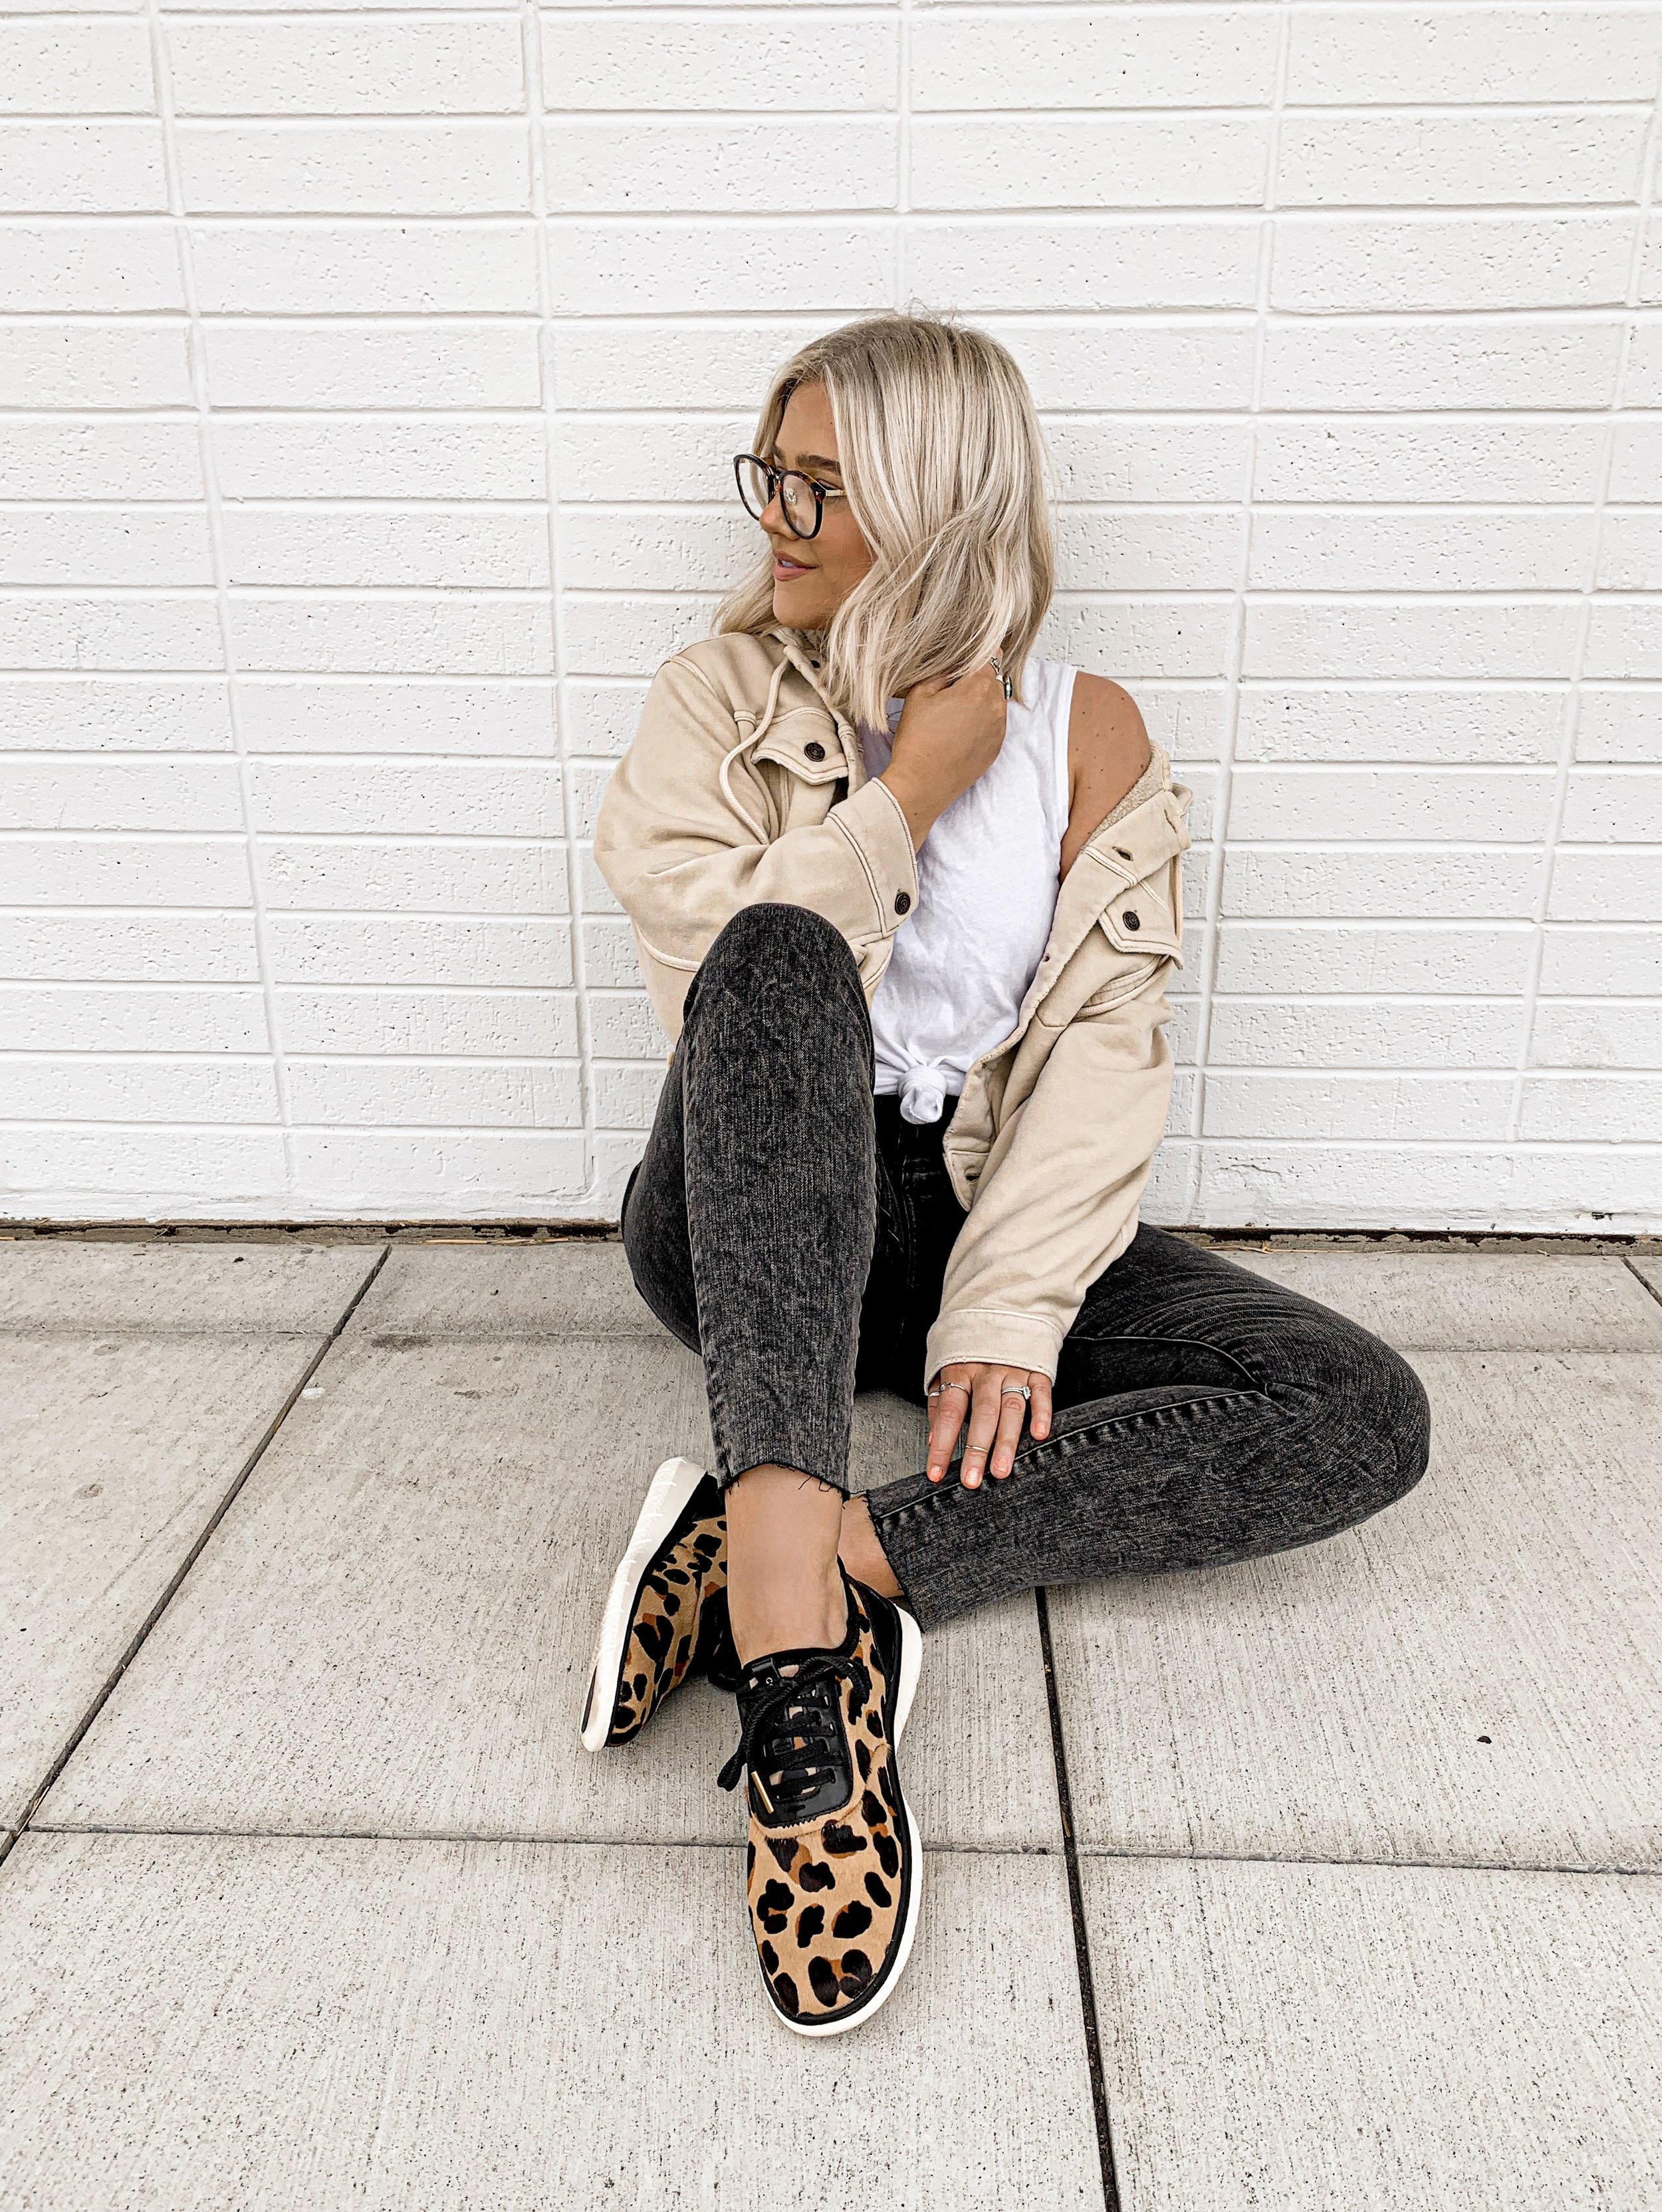 Bre Sheppard Cole Haan Animal Print Sneakers - bresheppard.com